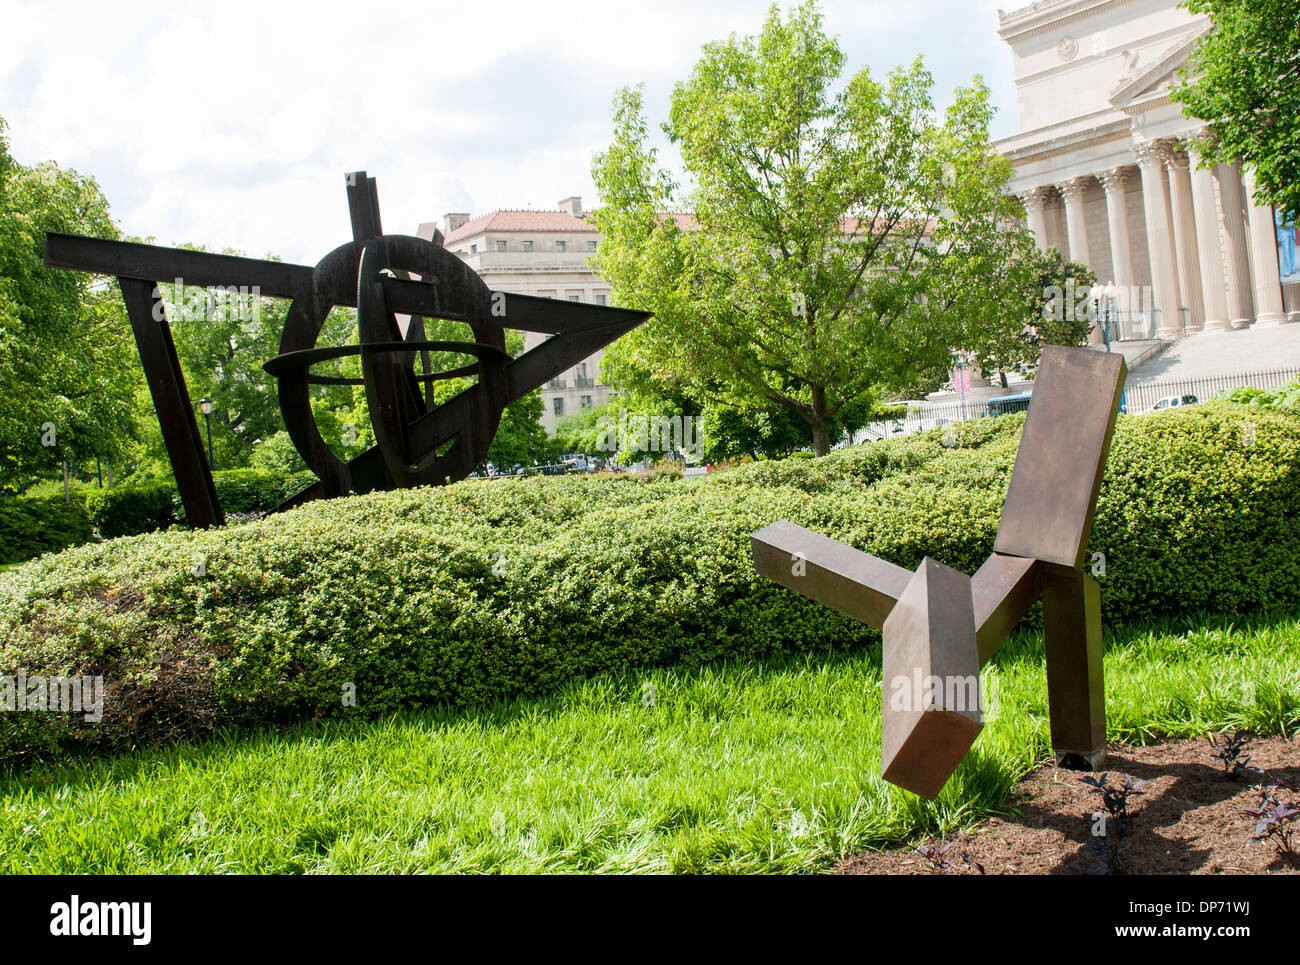 The National Gallery Of Art Sculpture Garden In Washington